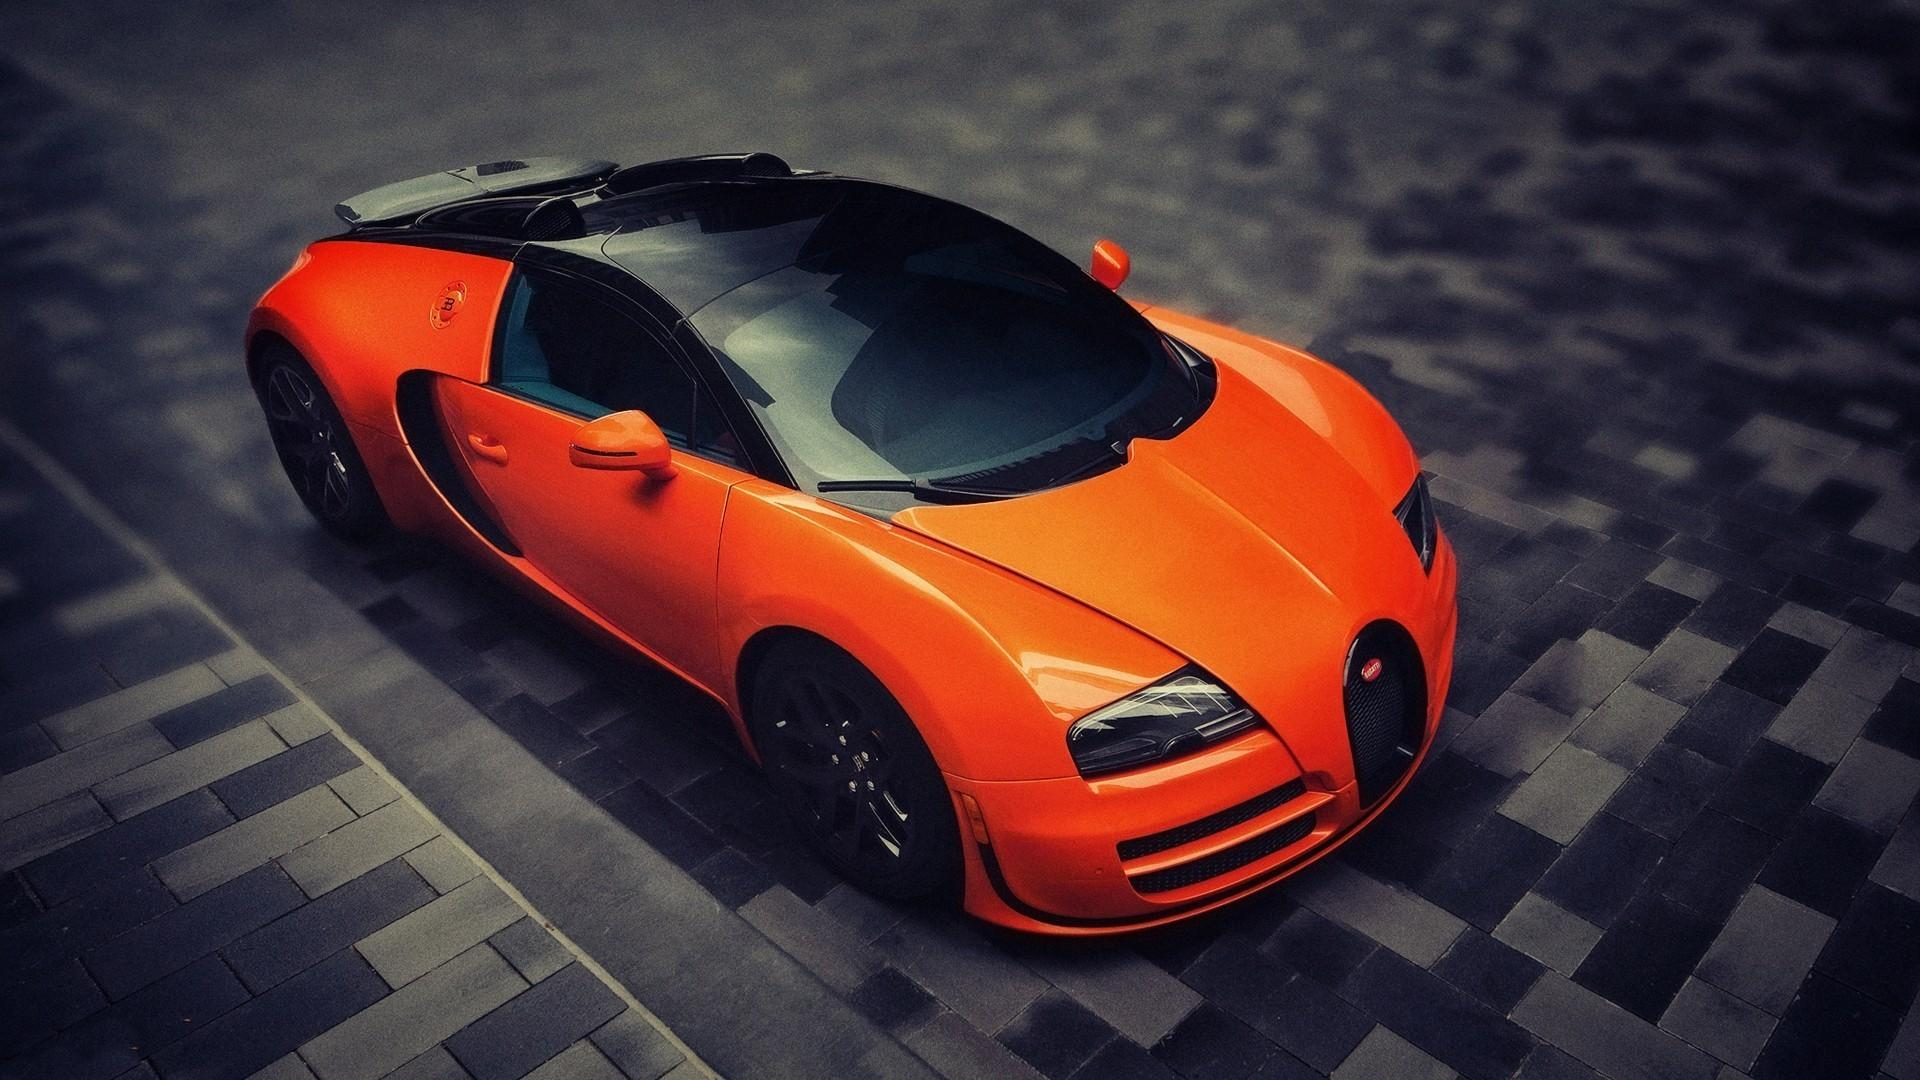 Orange bugatti veyron tilt-shift exotic cars wallpaper